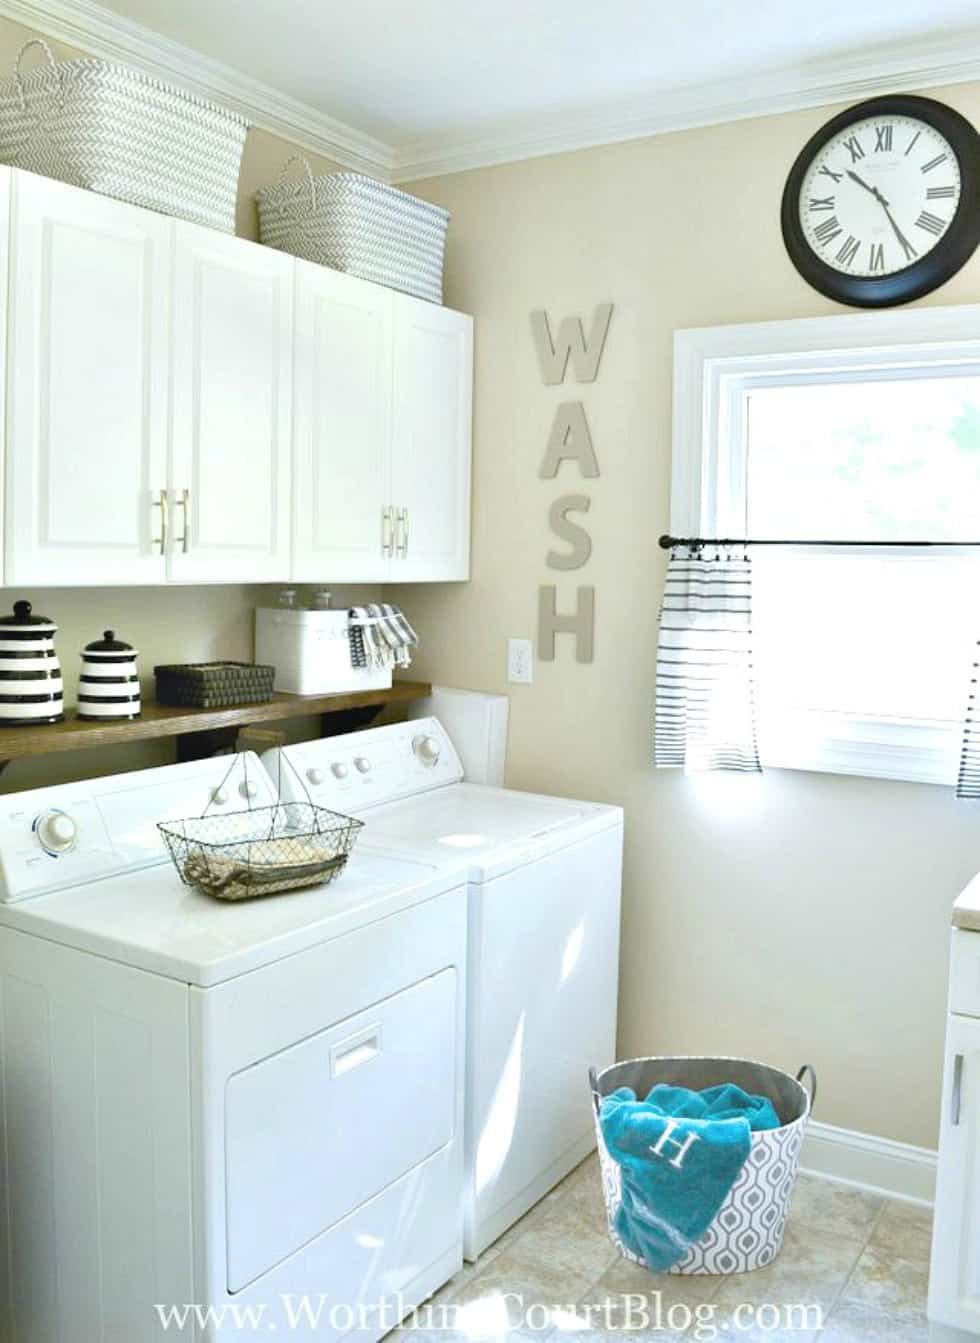 Laundry Room Remodel Reveal - Before And After || Worthing Court